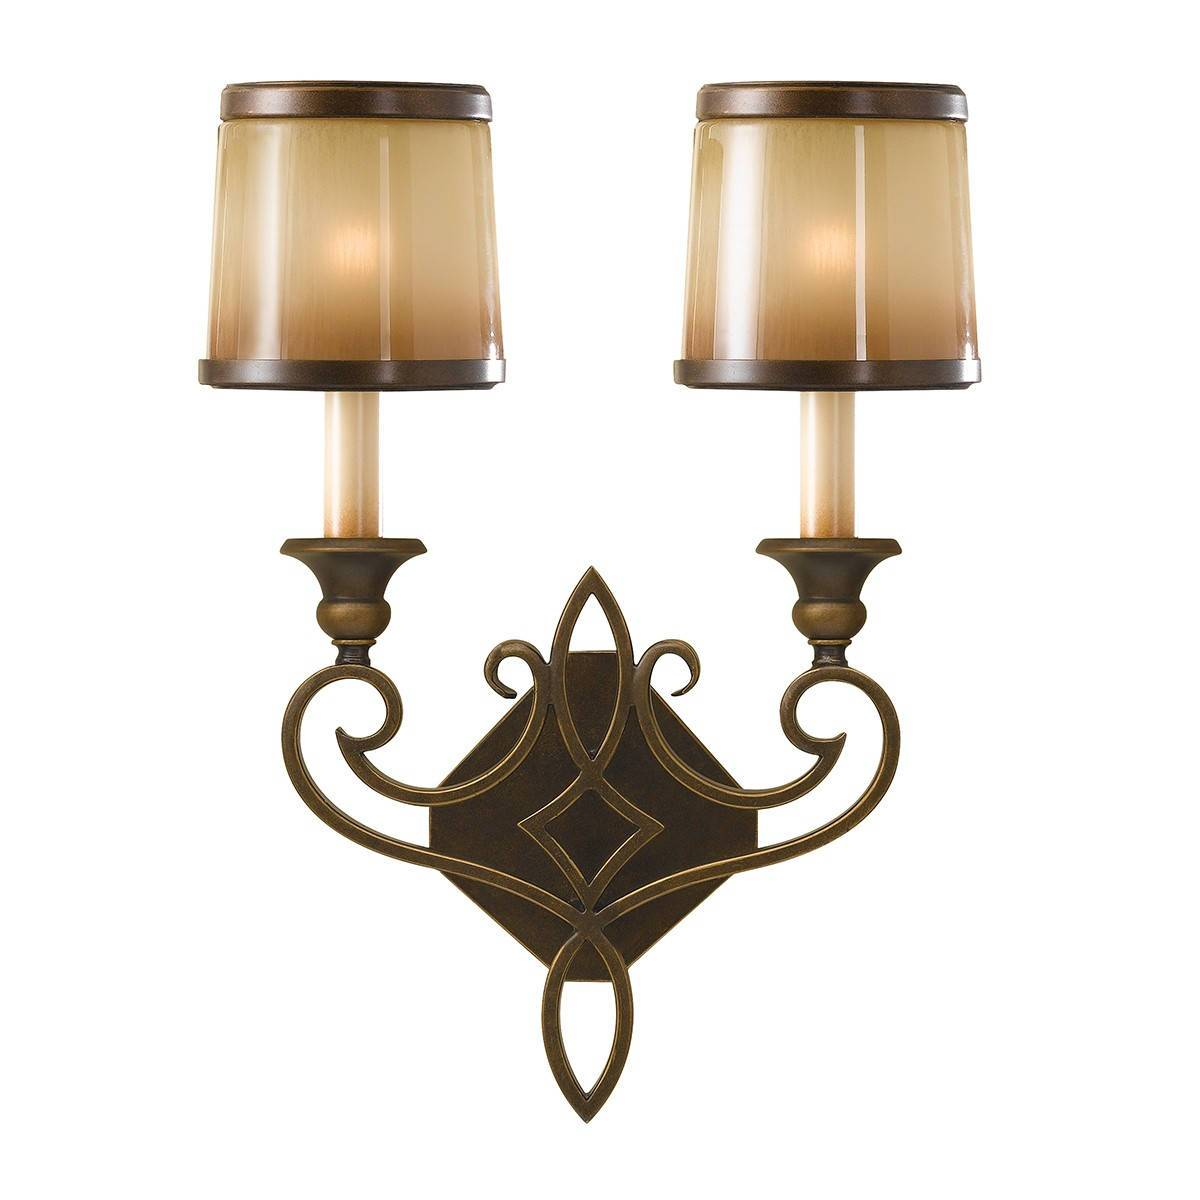 2 Light Indoor Candle Wall Light Bronze With Oak Glass Shades, E14